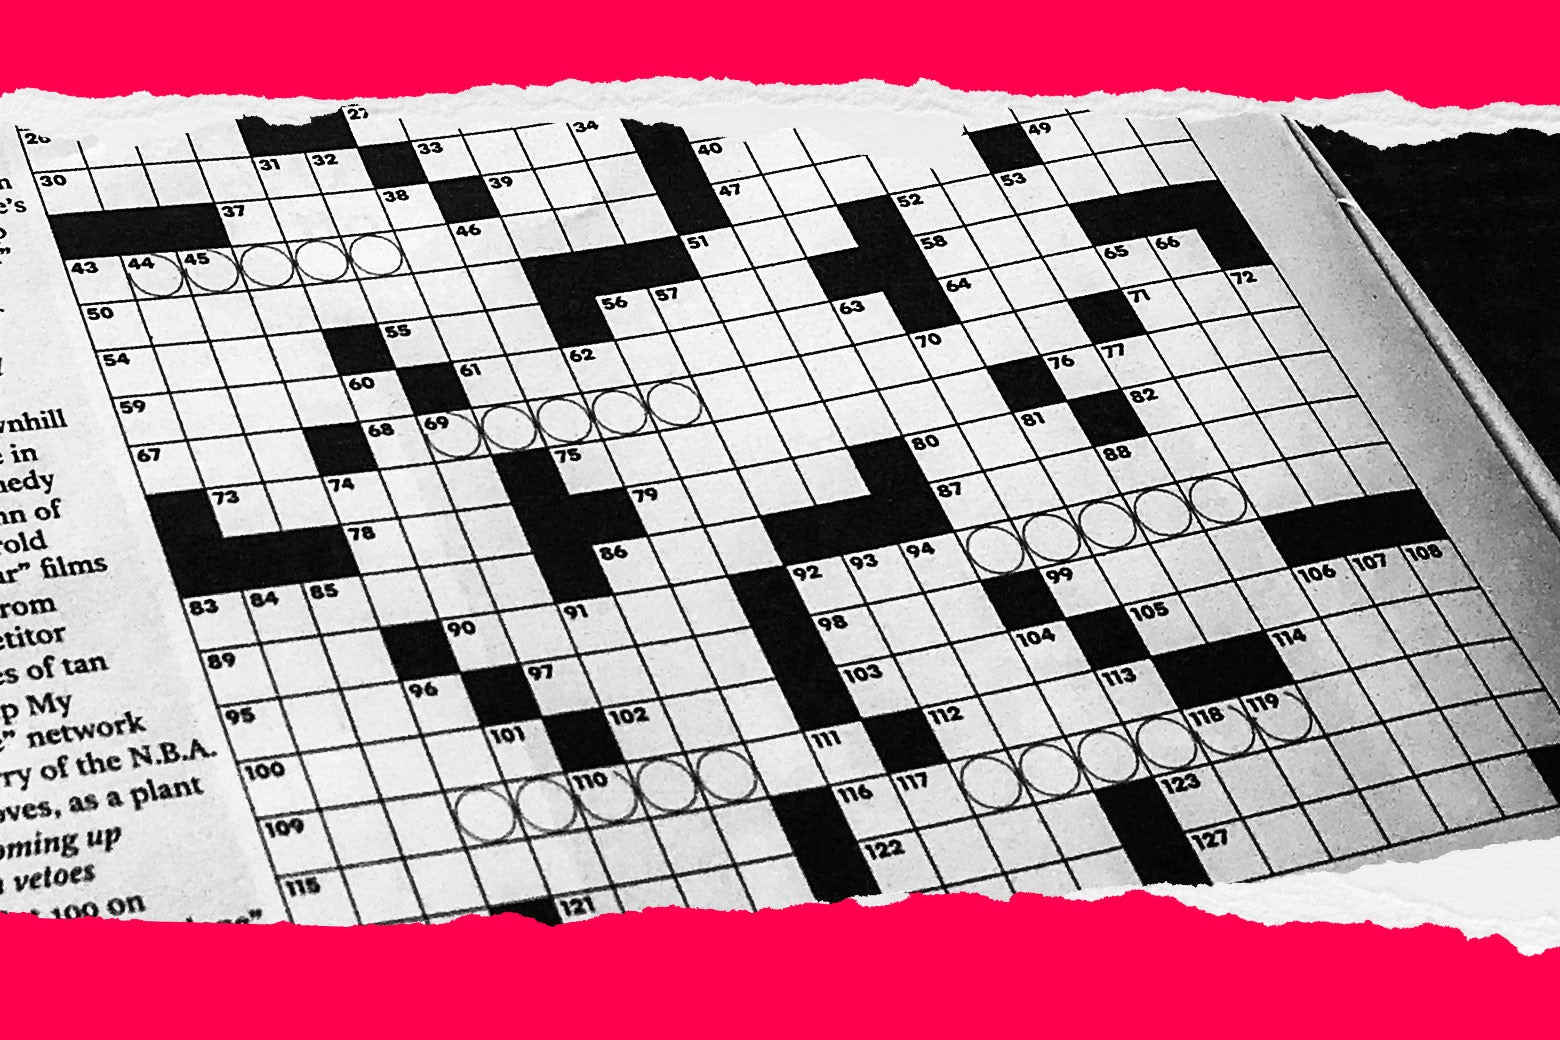 picture relating to La Times Printable Crossword referred to as The NYT crossword puzzles employ the service of of an ethnic slur suggests a whole lot